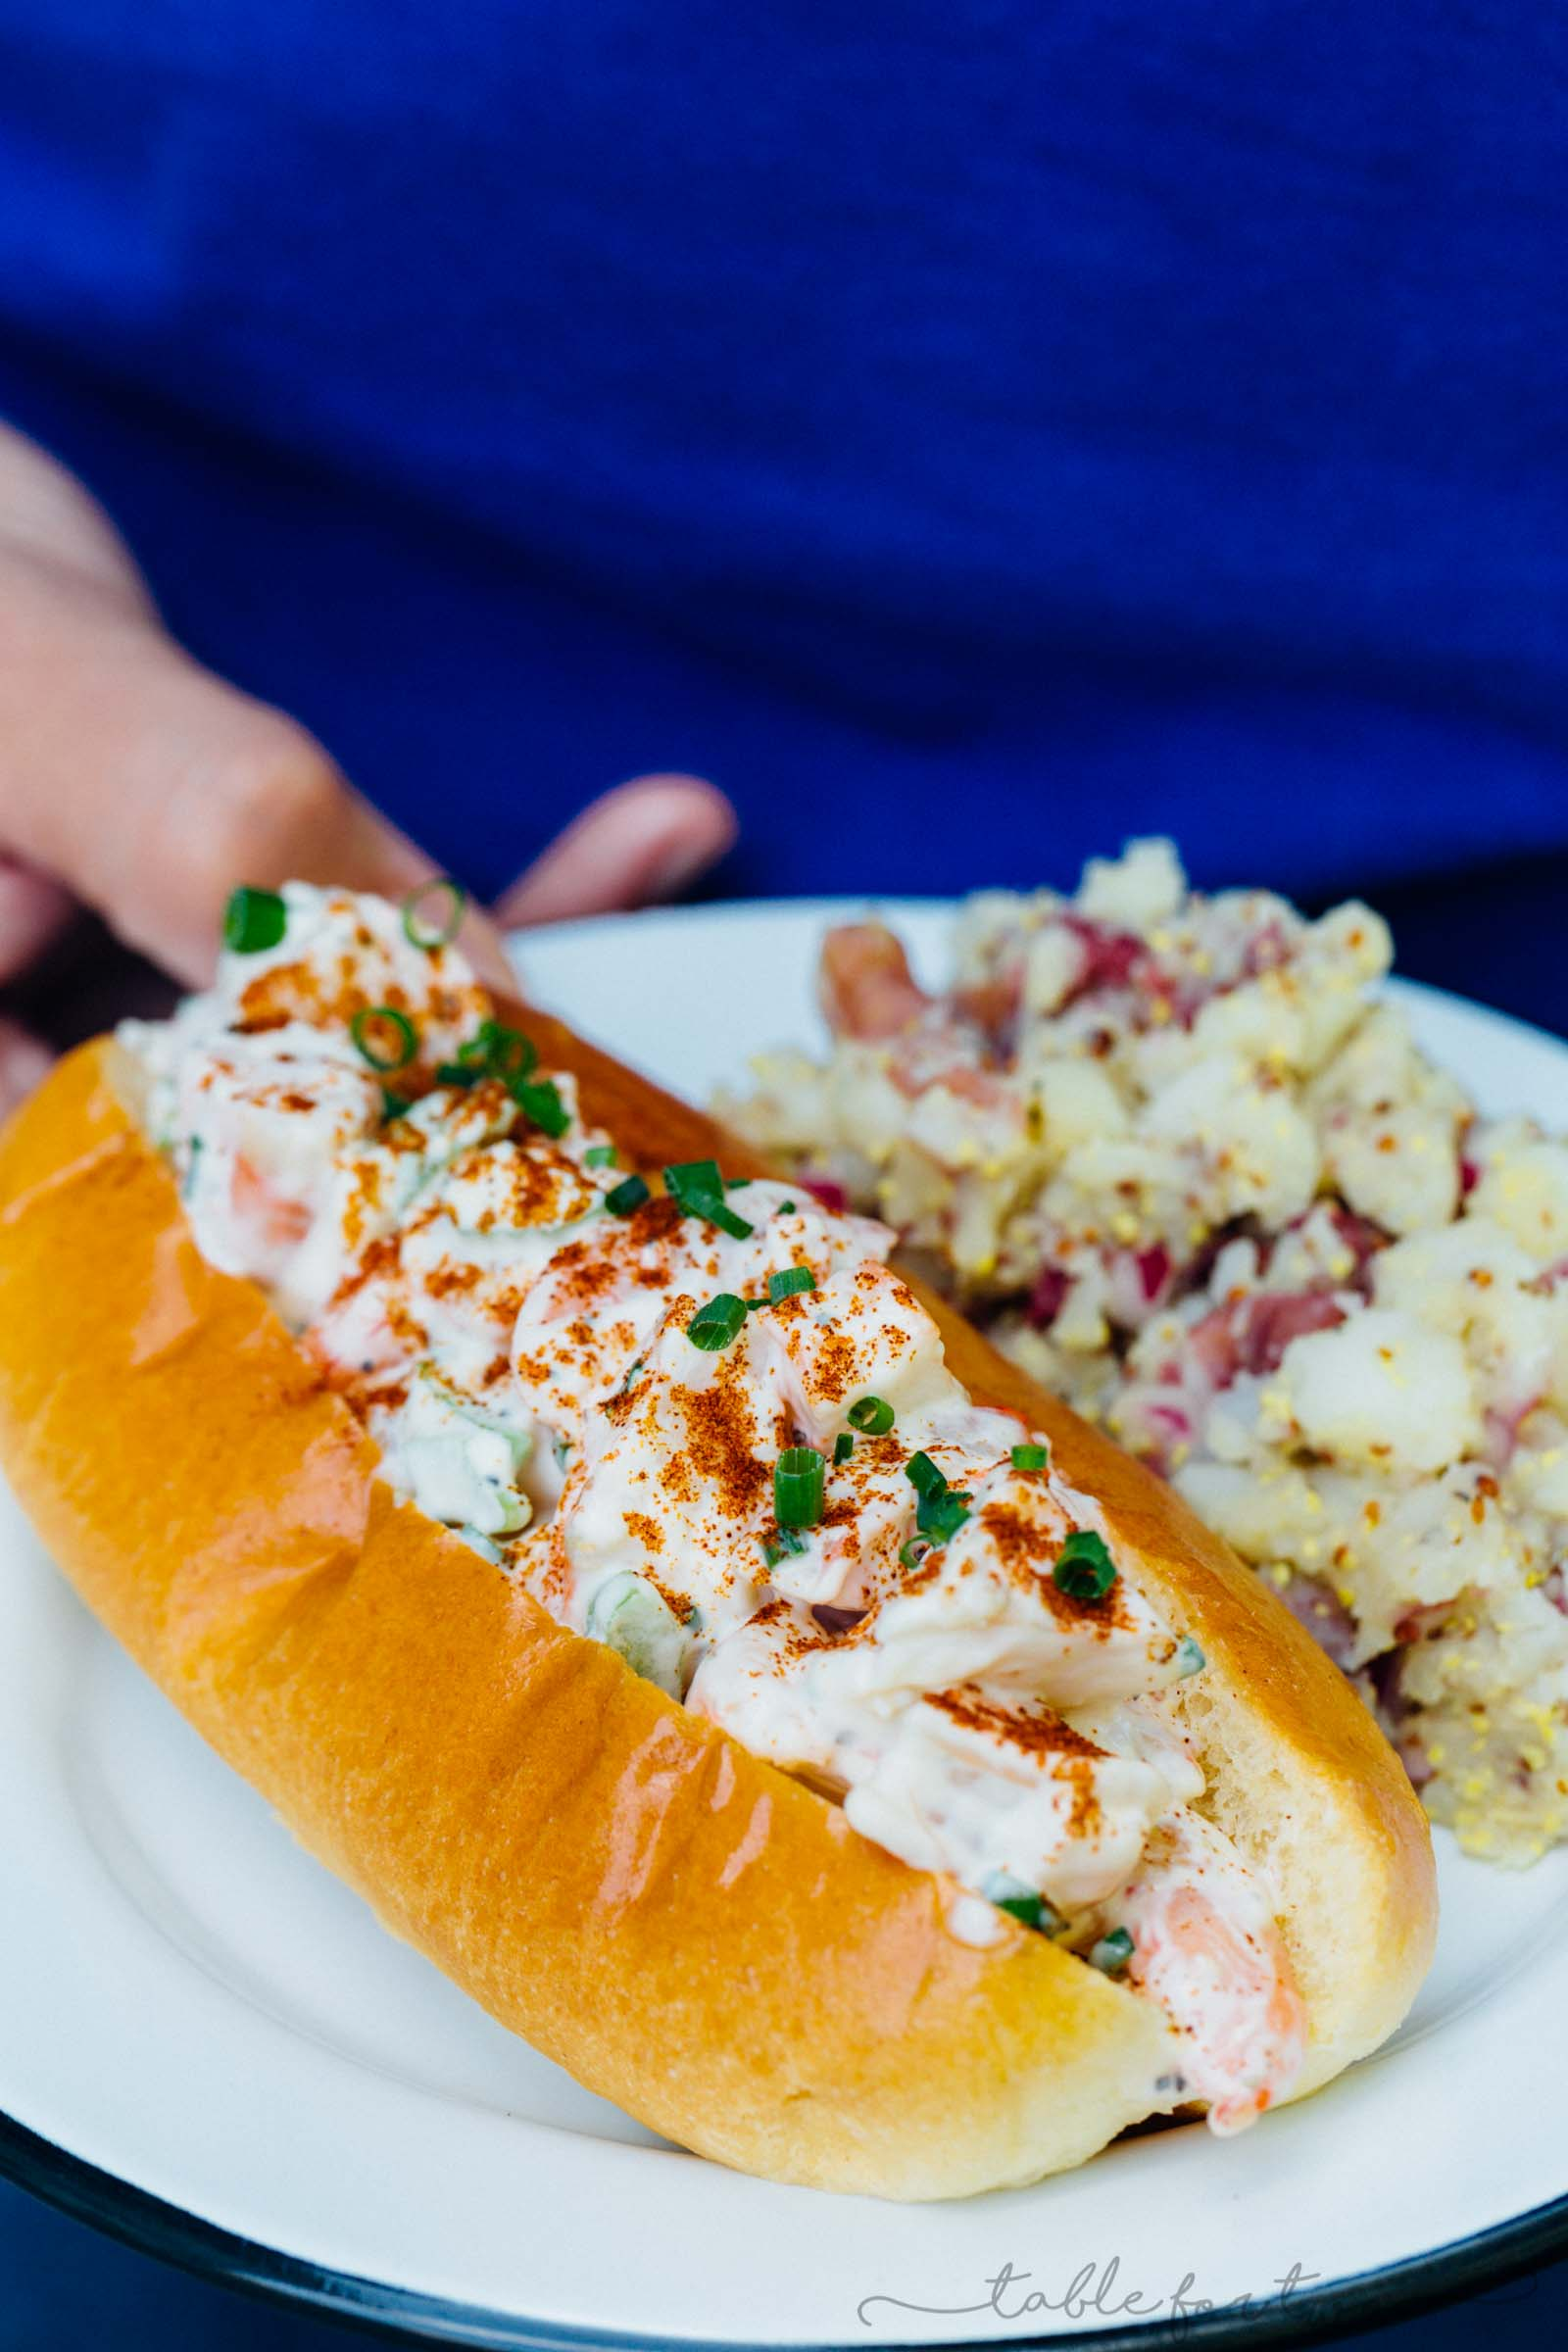 No more having to fly to New England for shrimp or lobster rolls! You can easily make these shrimp rolls at home and save on that airfare while celebrating summer in your backyard!